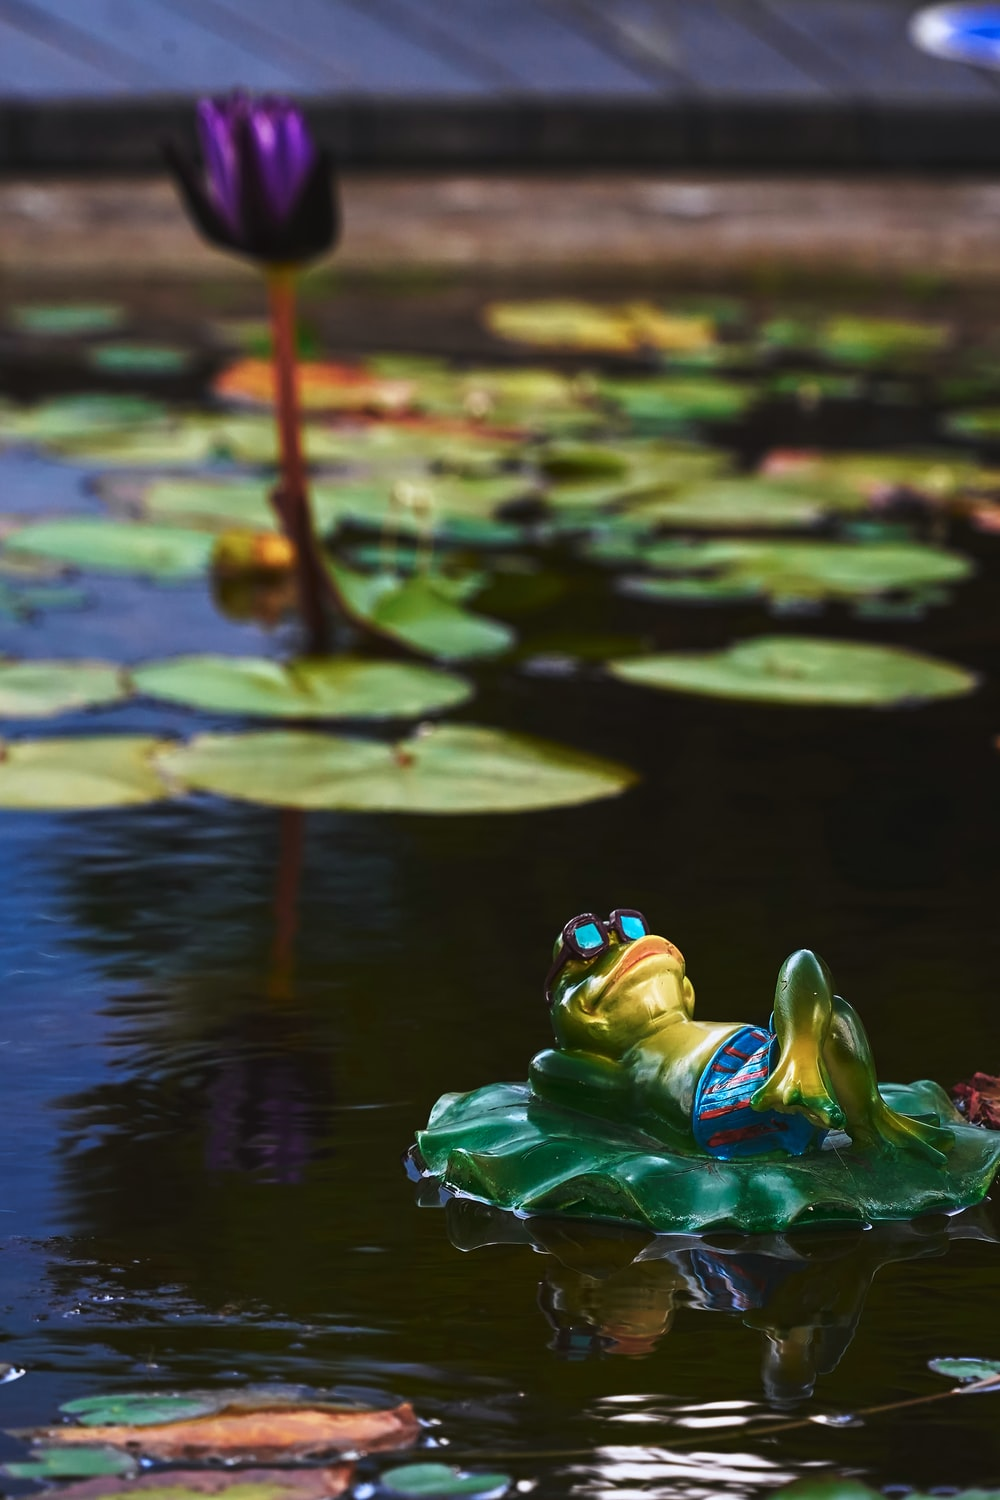 green frog on green water lily